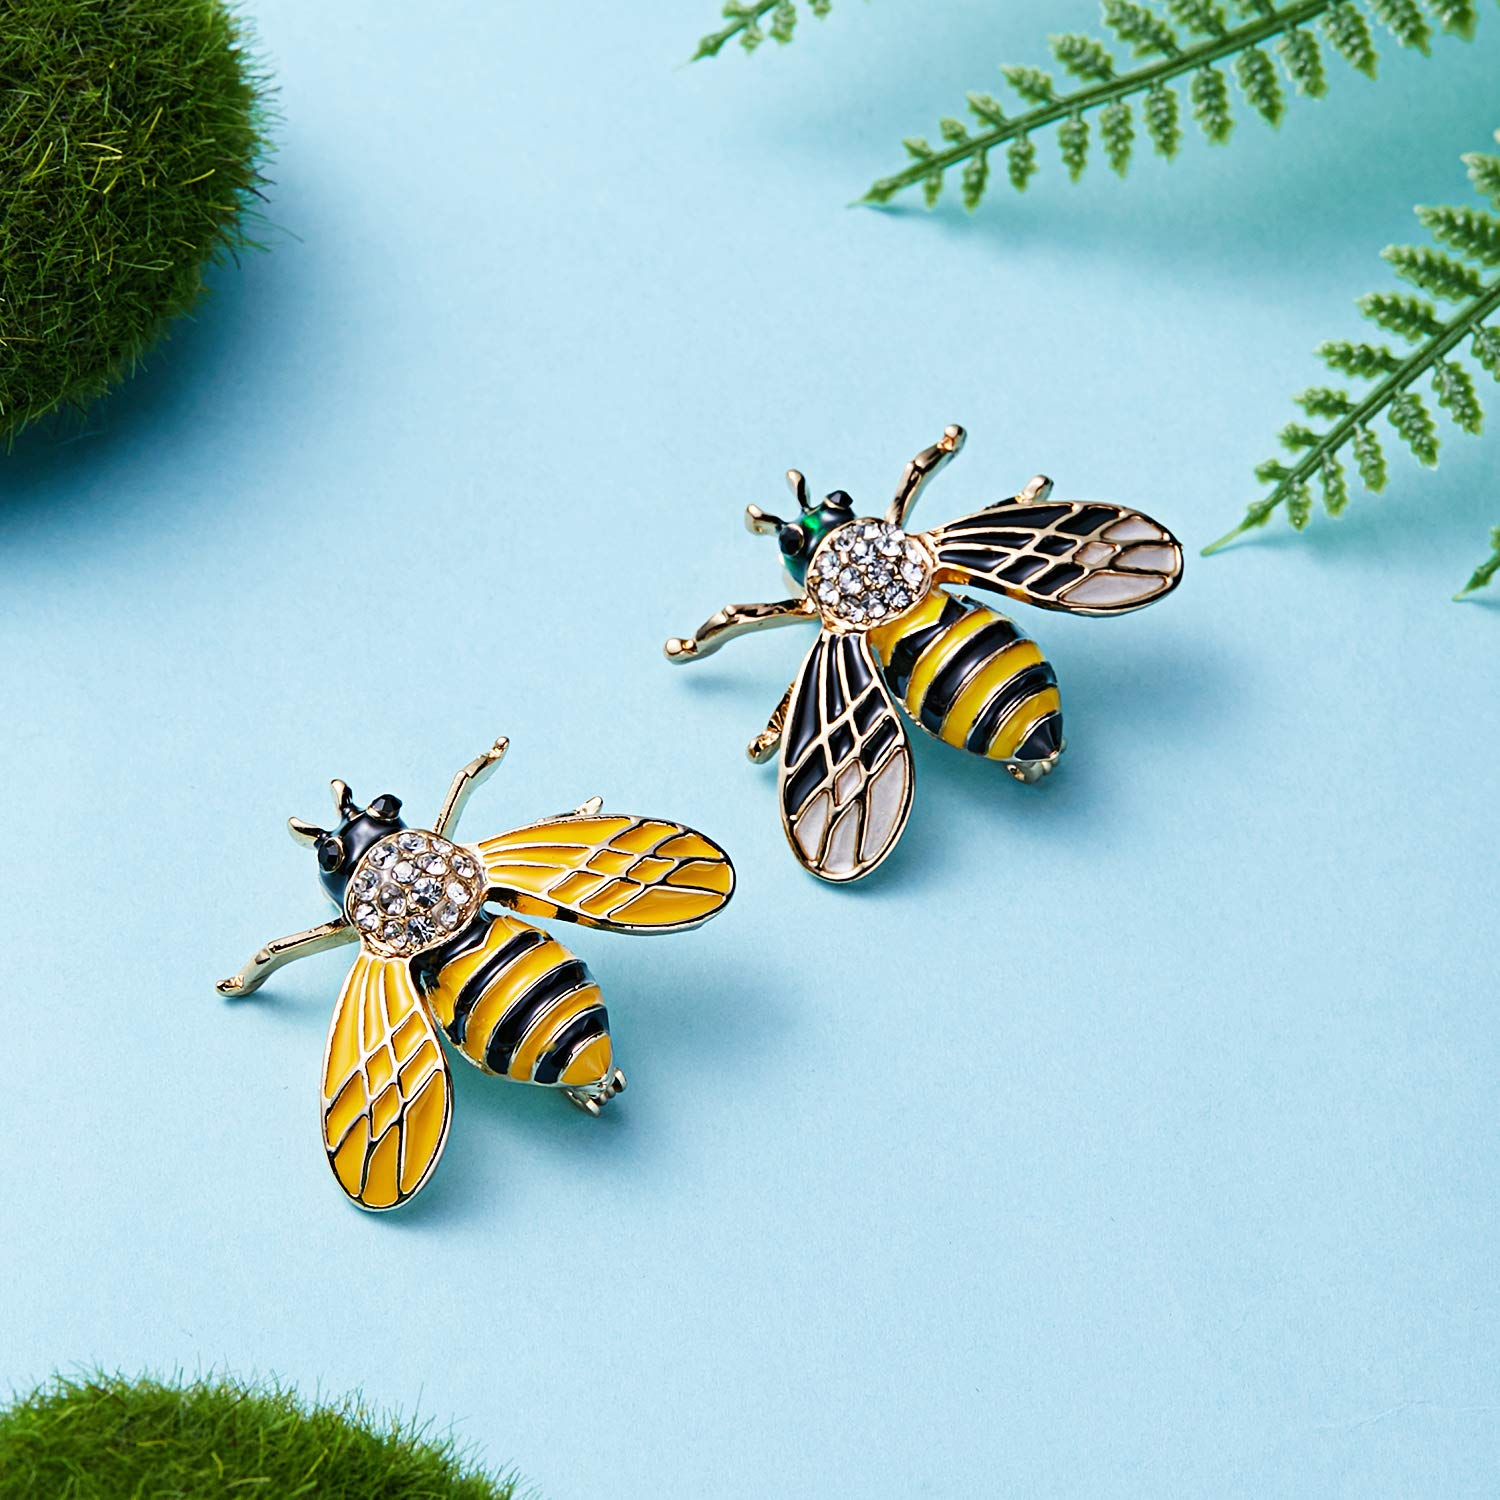 3Pcs Cute Honeybee Enamel Brooches Pin Antique Crystal Rhinestones Bee Scarf Clips for Women Girls (Style5) by beemean (Image #3)